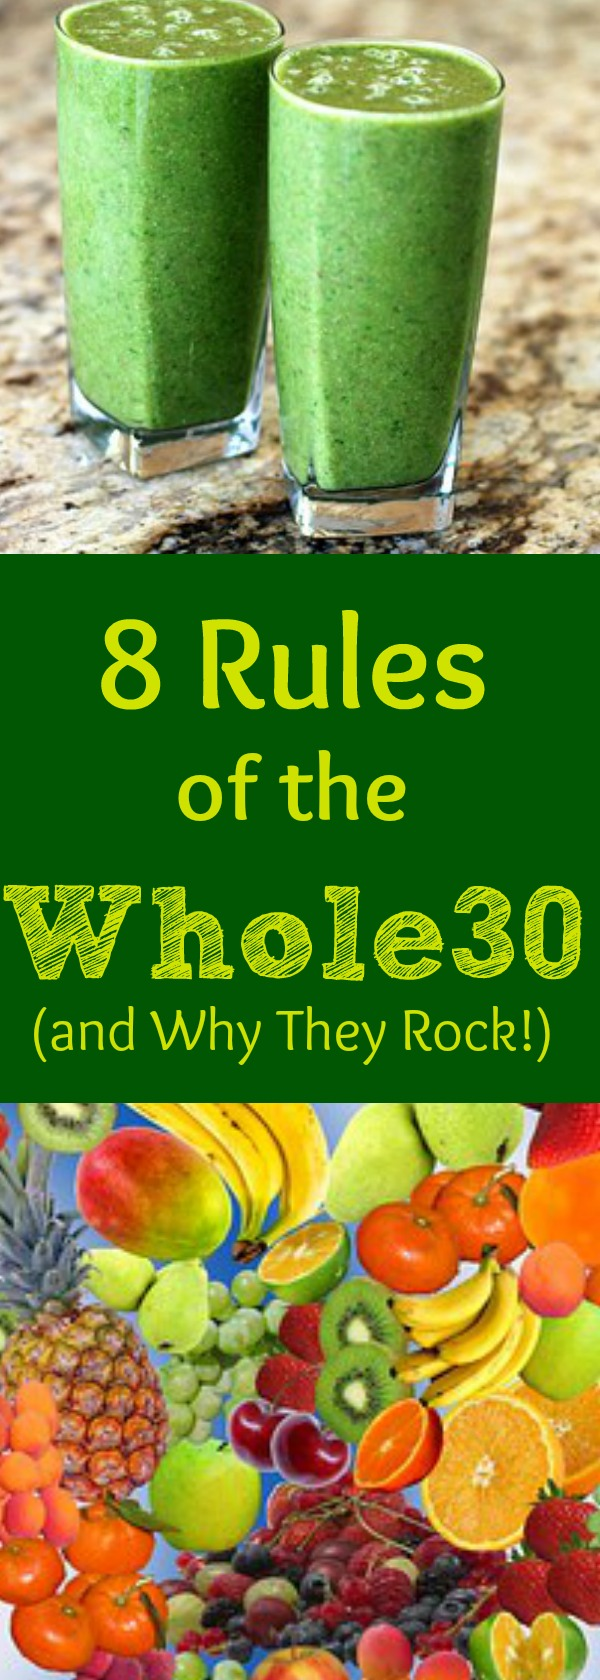 GET HEALTHY IN JUST 30 DAYS! The Whole30 is a complete psychological reset around your eating patterns! It is hard. I'm not going to lie. Even though the creators of the plan say it's not hard---Well, take a look at the article and decide for yourself. IF you can complete a Whole30, you will lose weight, feel great, sleep the best you have in your whole life, and your health will improve! Find out what is the Whole30!